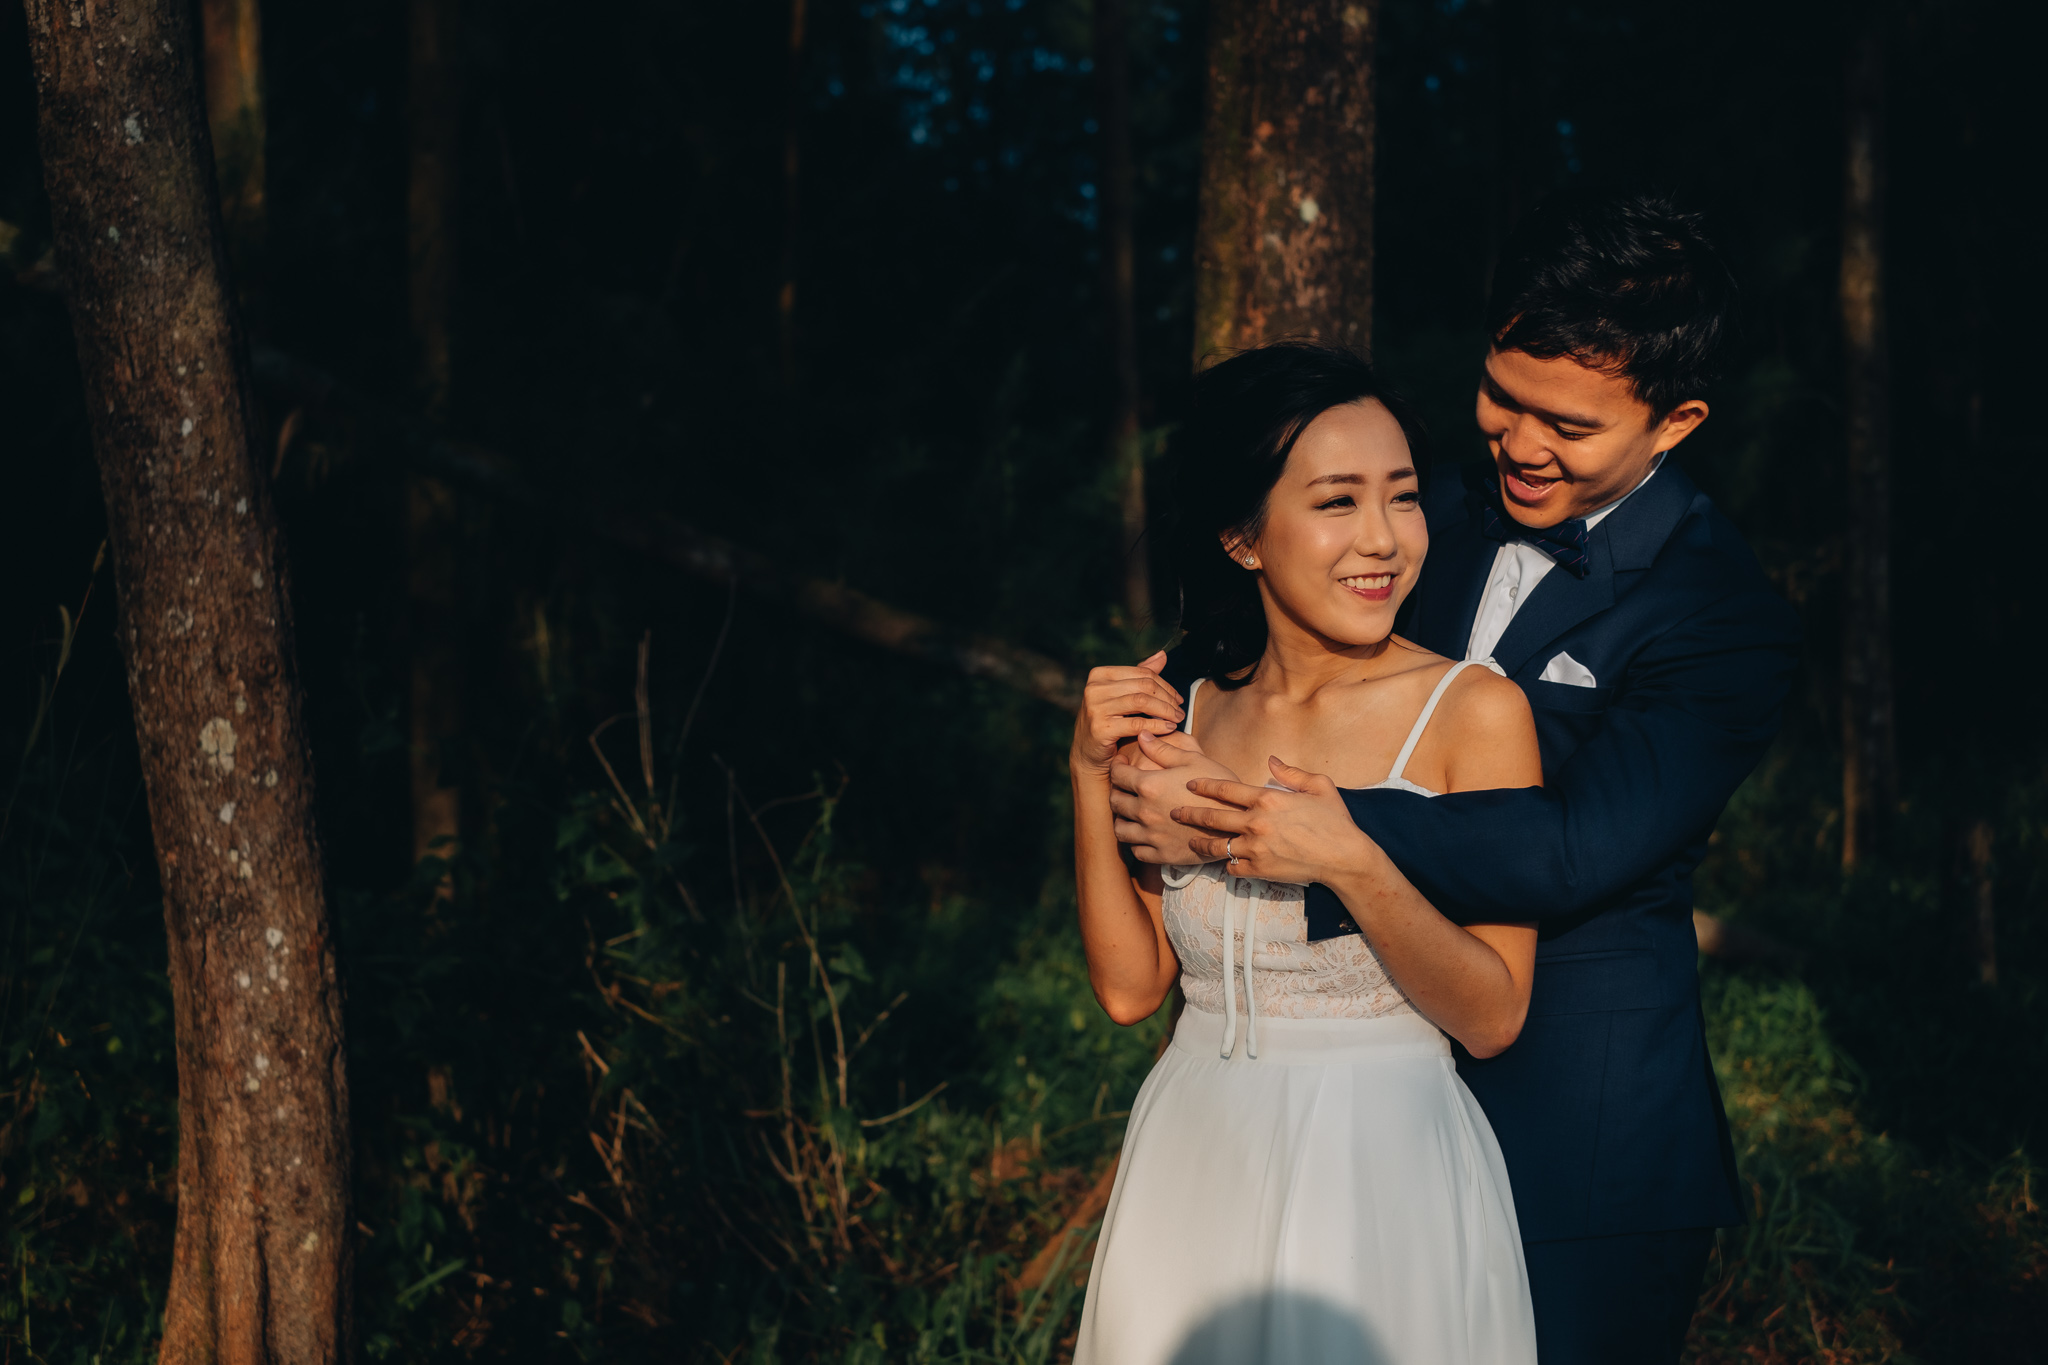 Sabrina & Willy Pre-Wed (resized for sharing) - 025.jpg